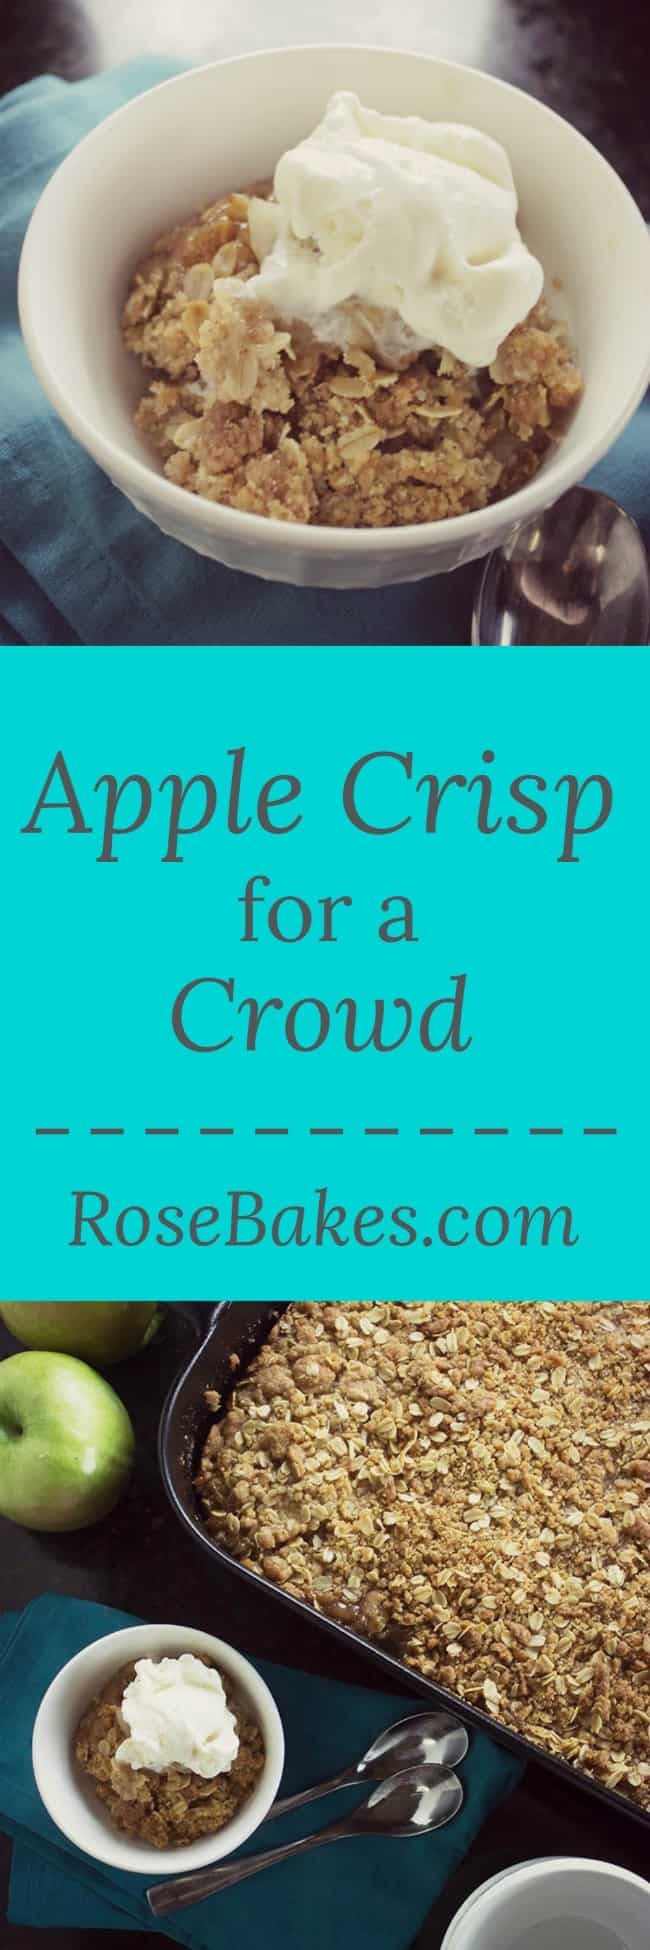 Apple Crisp for a Crowd by RoseBakes